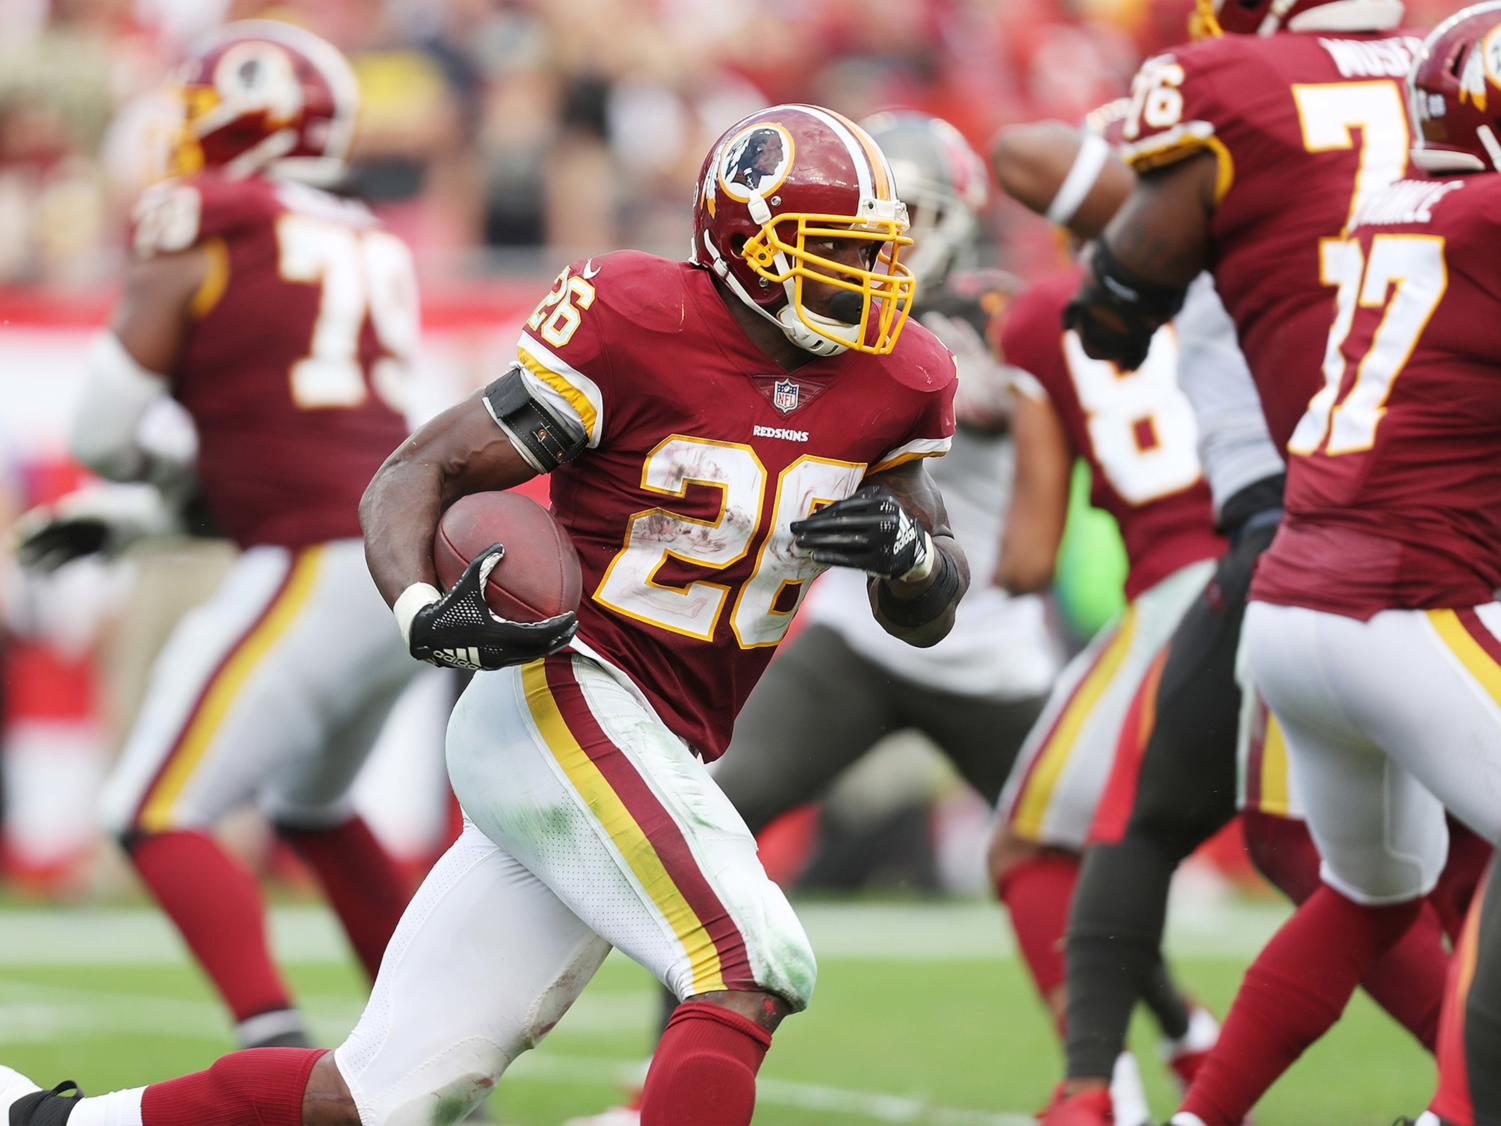 Washington Redskins running back Adrian Peterson (26) runs the ball for a first down against the Tampa Bay Buccaneers on November 11, 2018, at Raymond James Stadium in Tampa, Fla. (Monica Herndon/Tampa Bay Times/TNS)